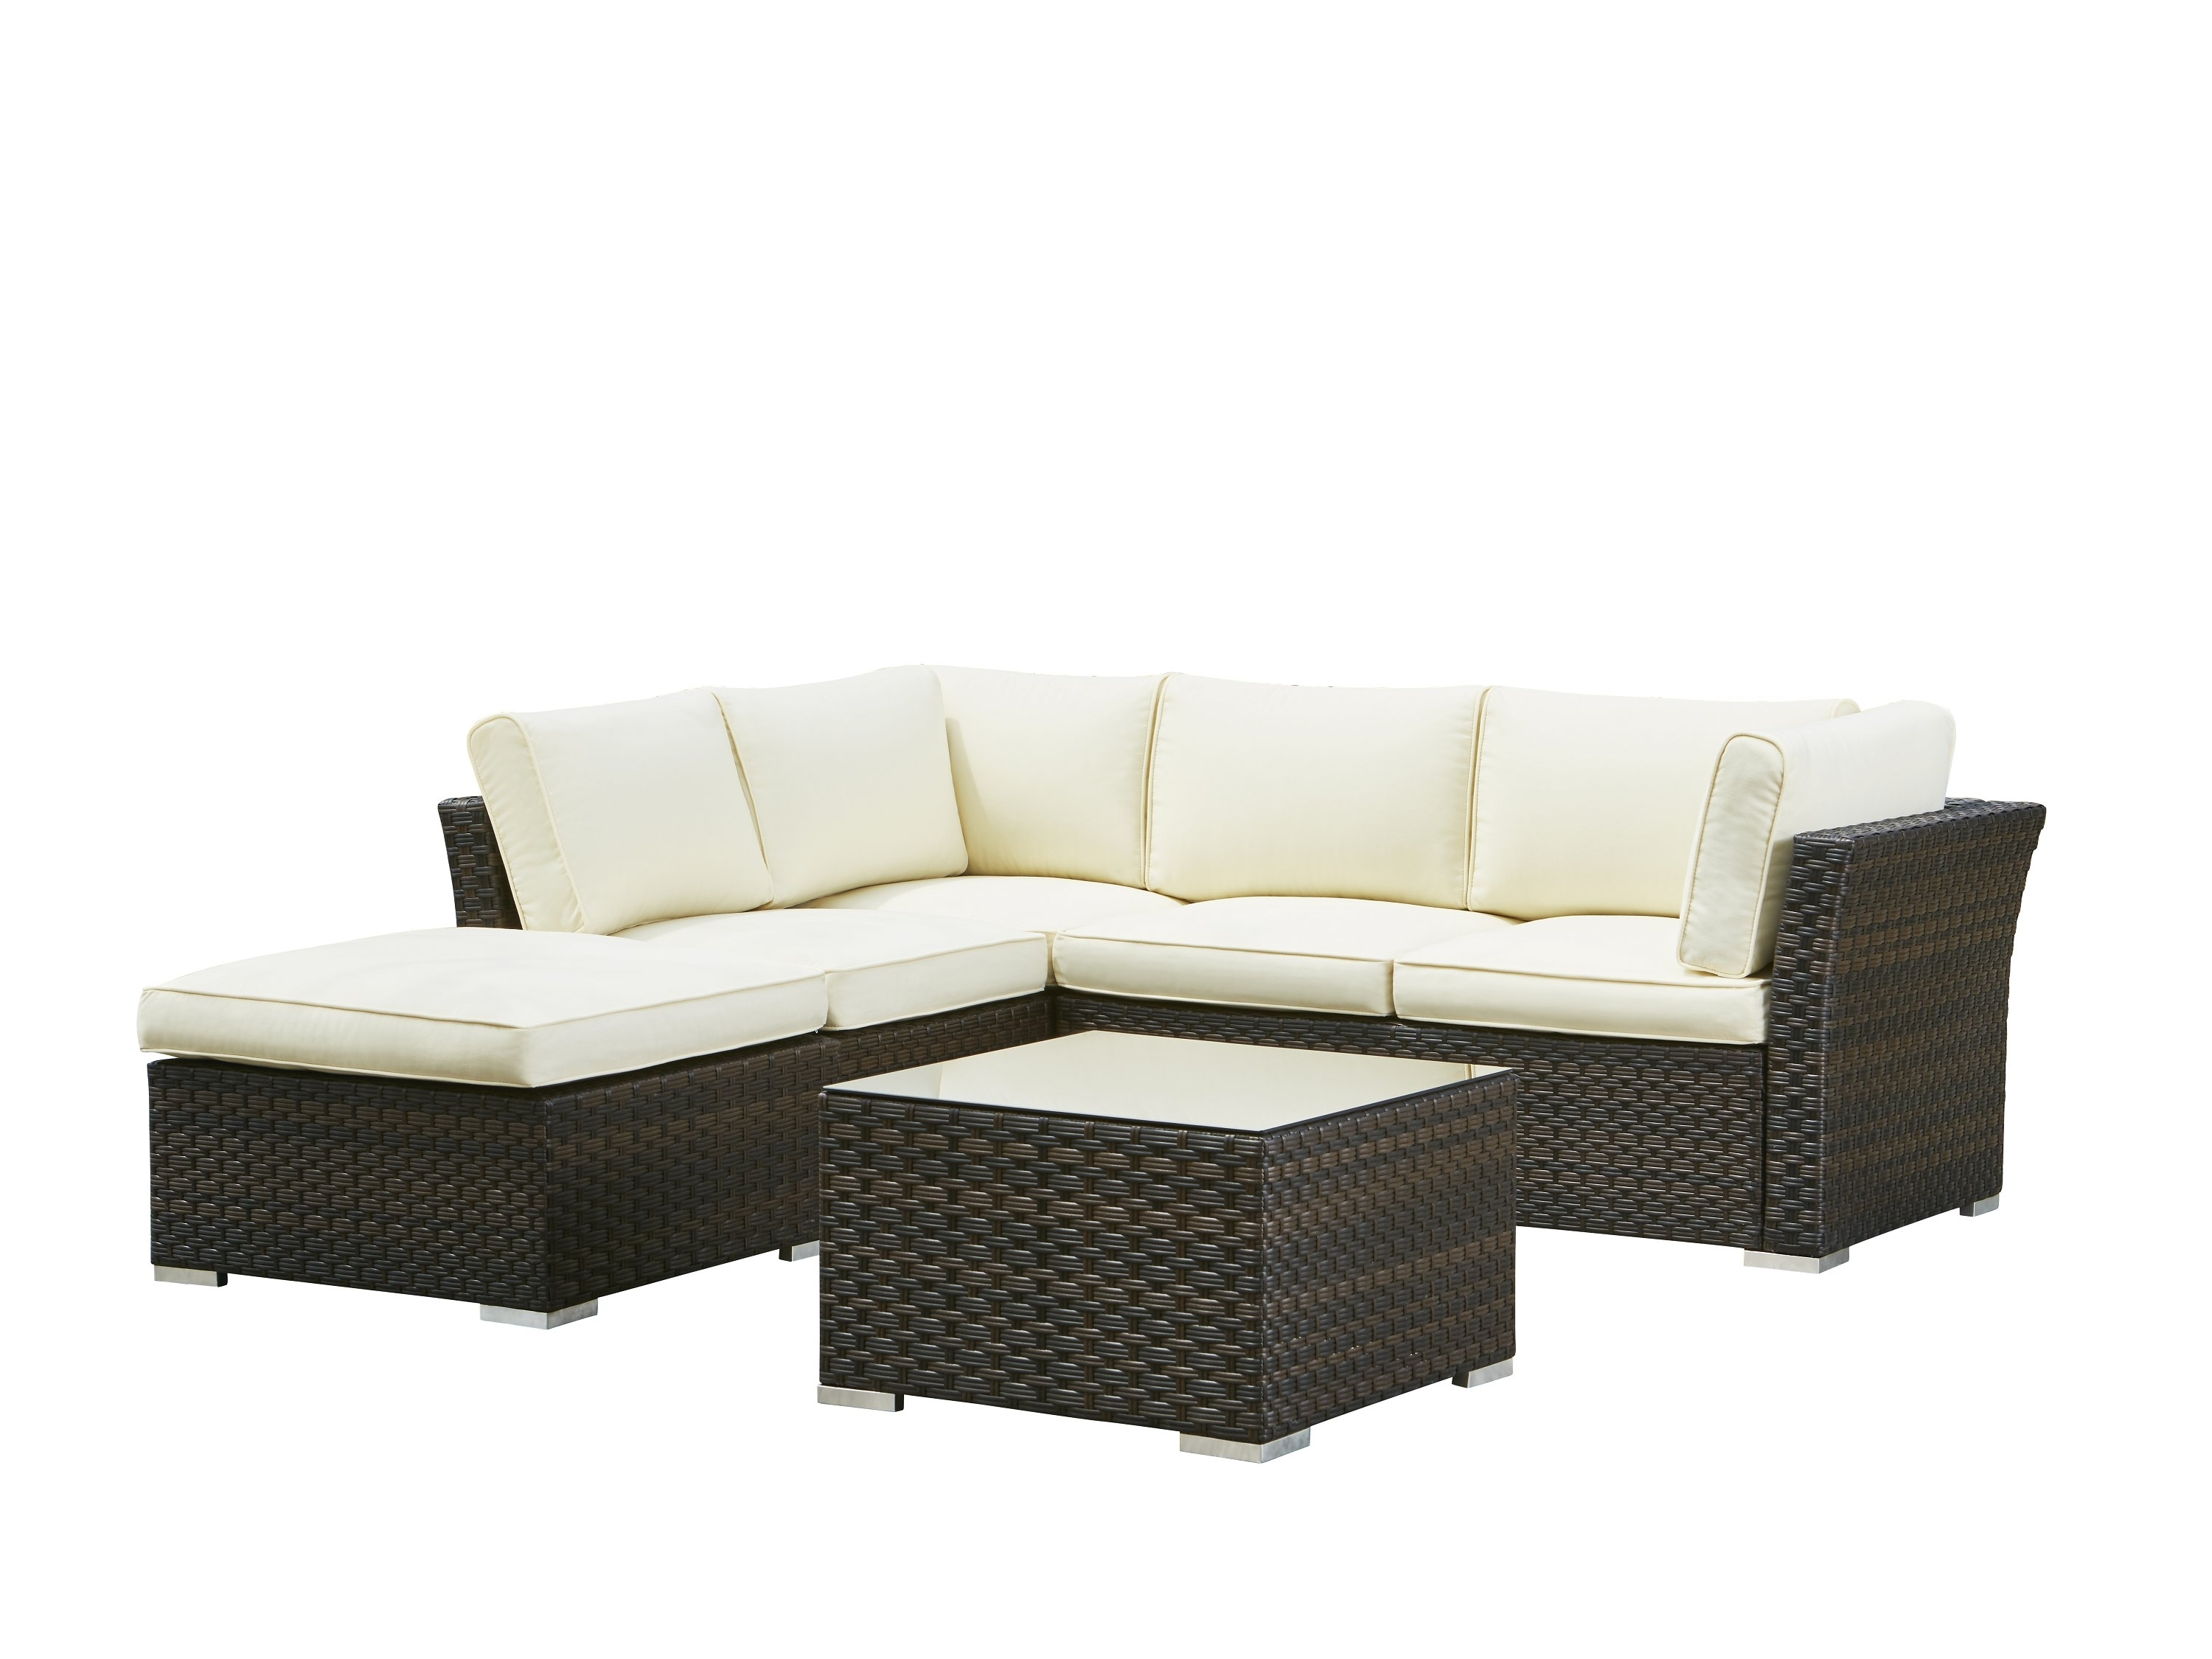 Allmodern Throughout Patio Conversation Sets Under $ (View 3 of 15)